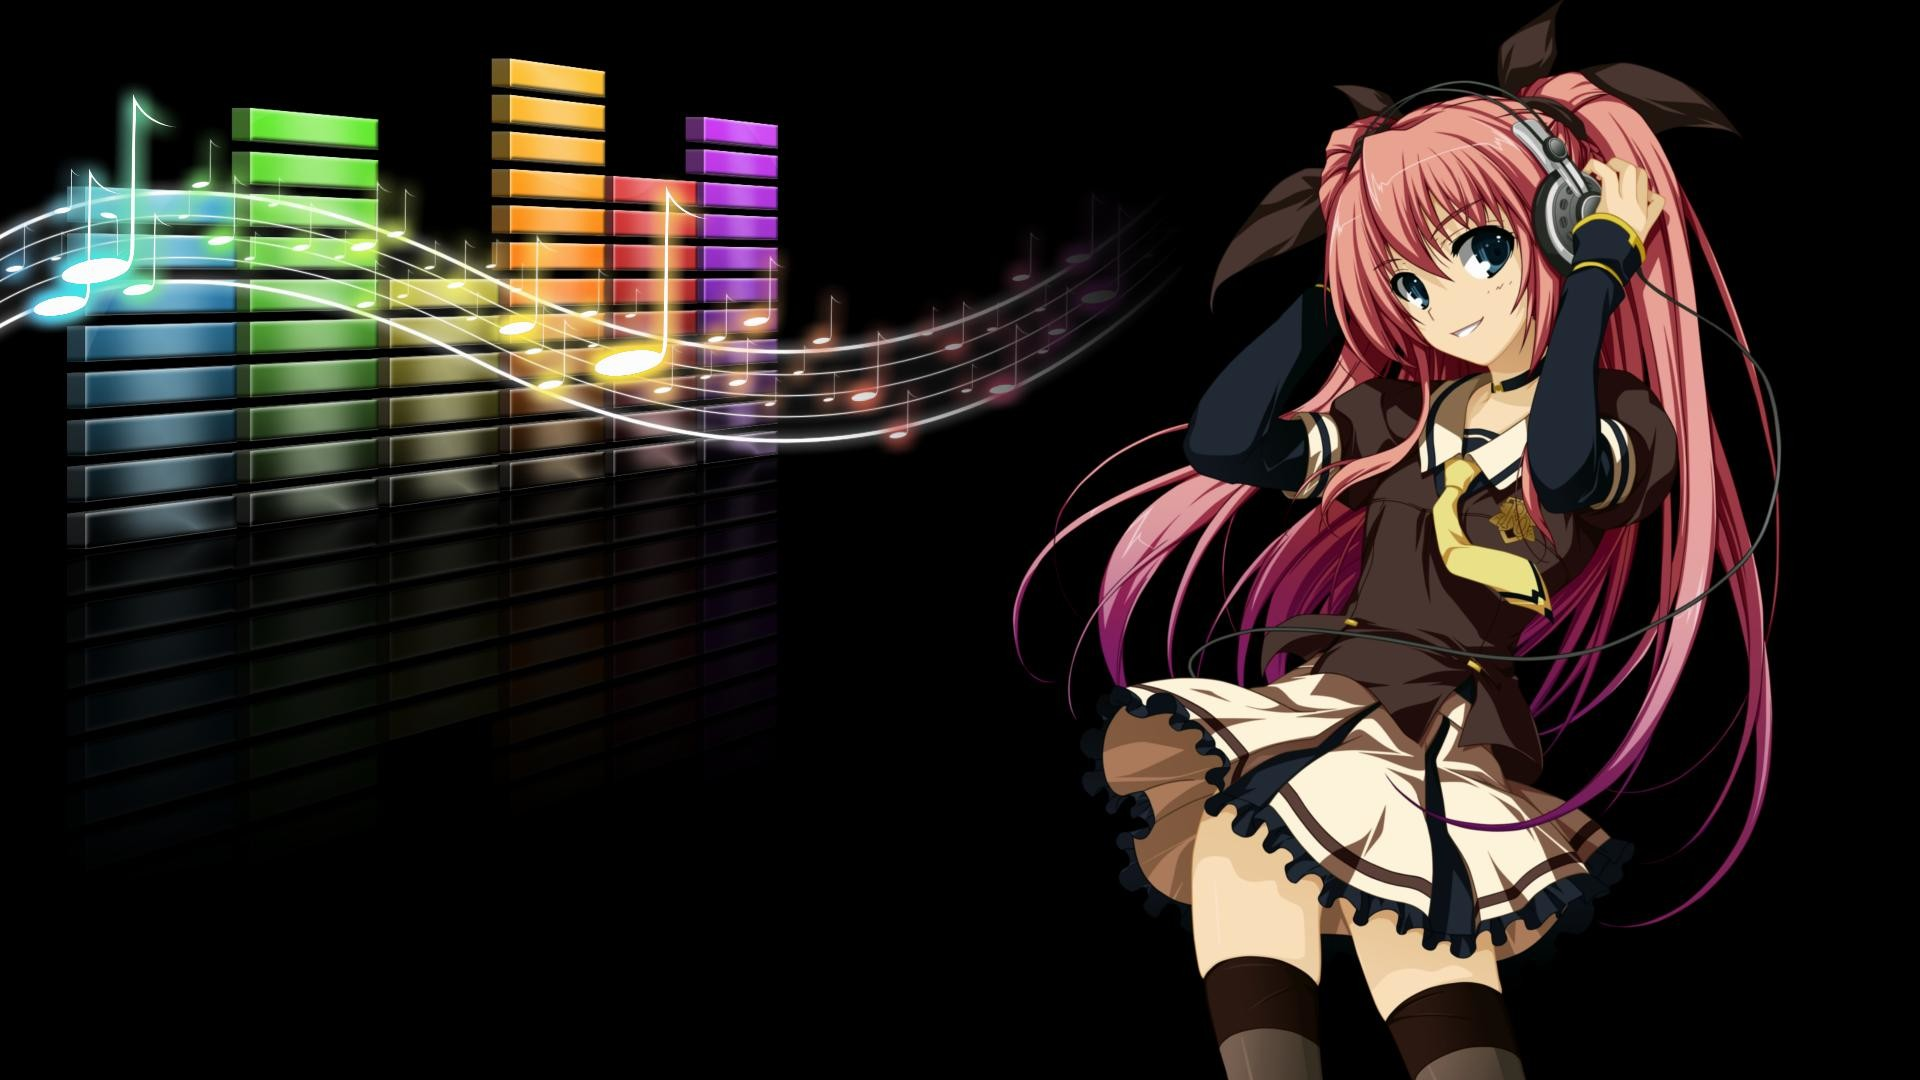 wallpaper.wiki-Anime-Music-Beautiful-Wallpapers-PIC-WPC0012371